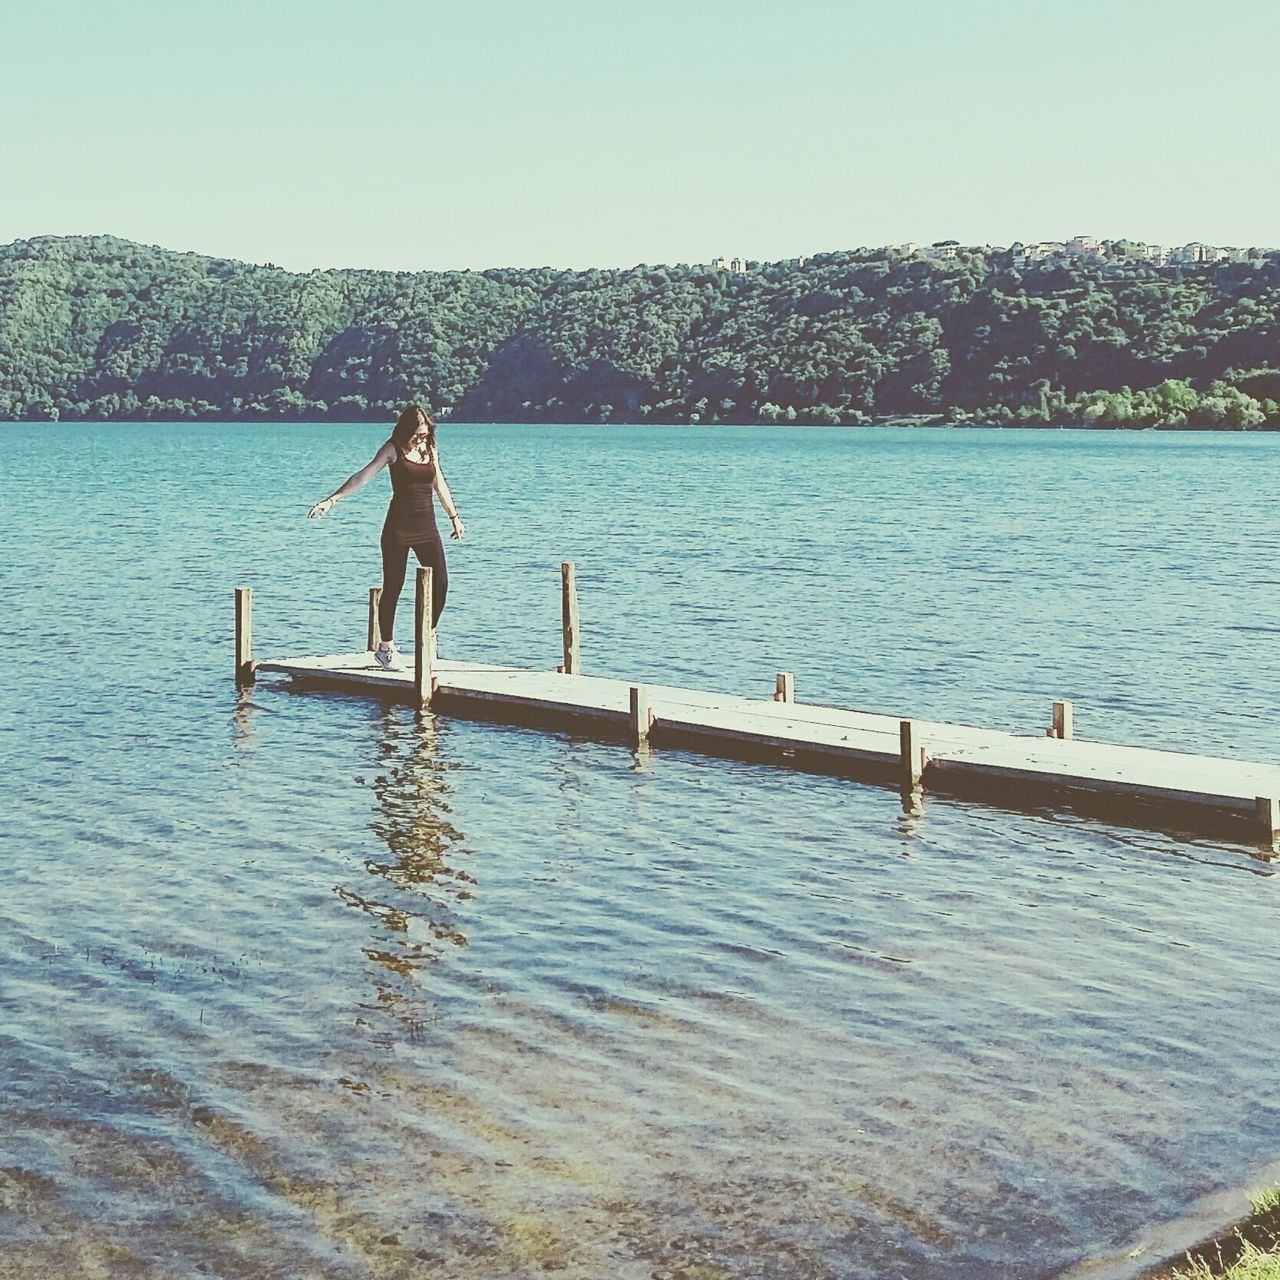 Twist and turn. Me Hello World Hanging Out That's Me Relaxing Nature Lake Italy Italia Lago Albano Lago Di Albano Enjoying Life Traveling Travel Love Girl My Best Photo 2015